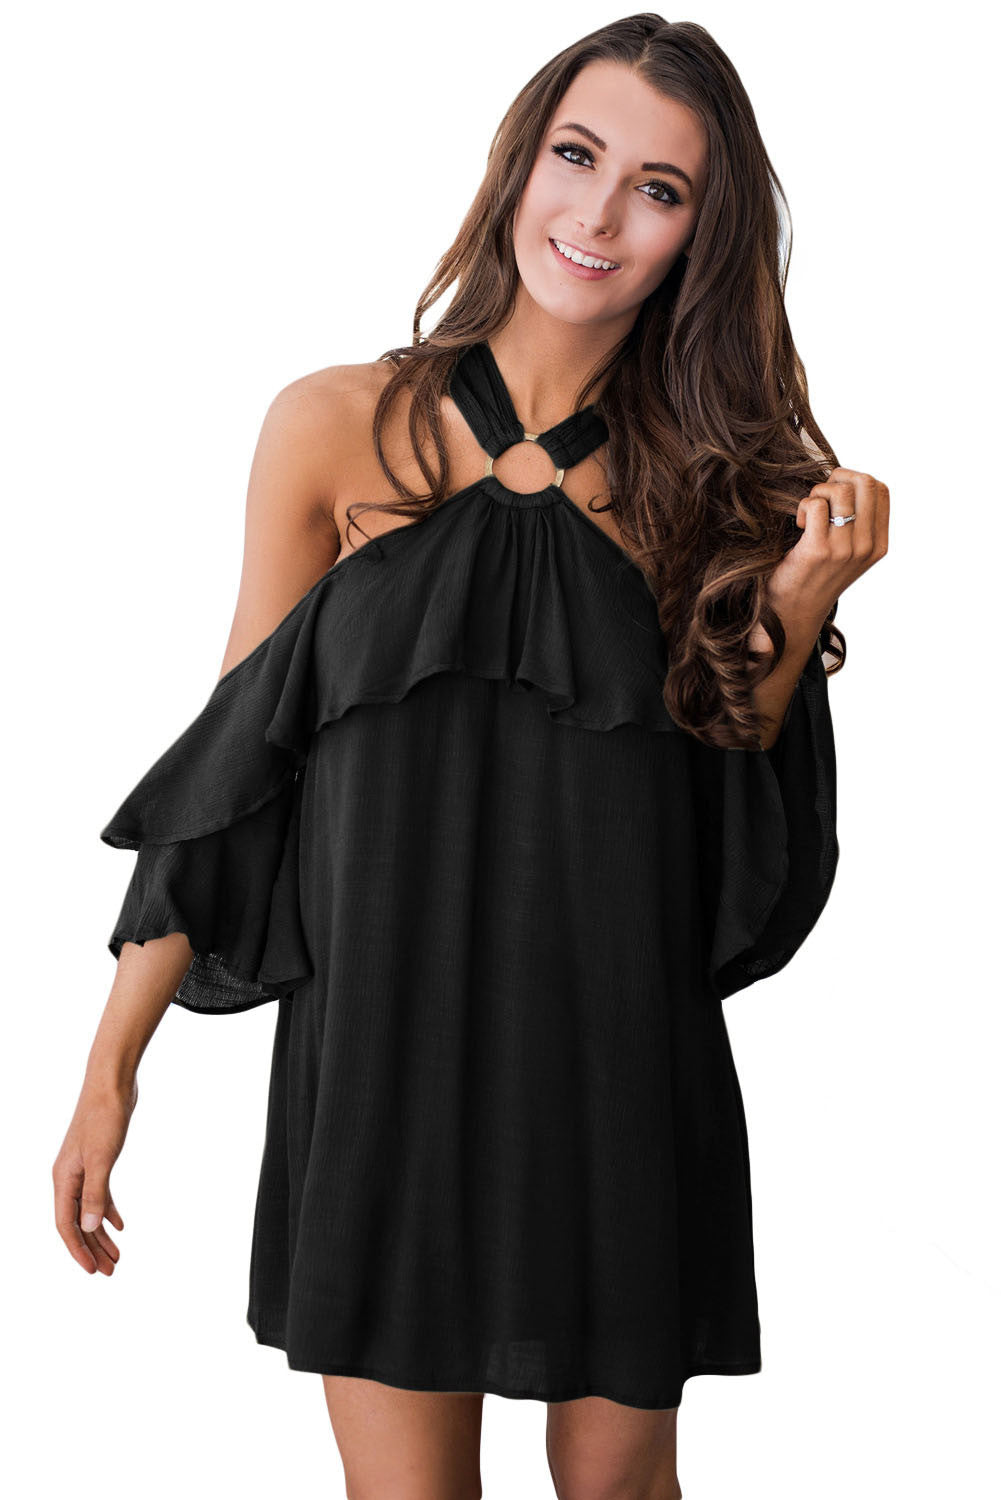 Chicloth Black Adorable Sexy O Ring Detail Ruffle Dress